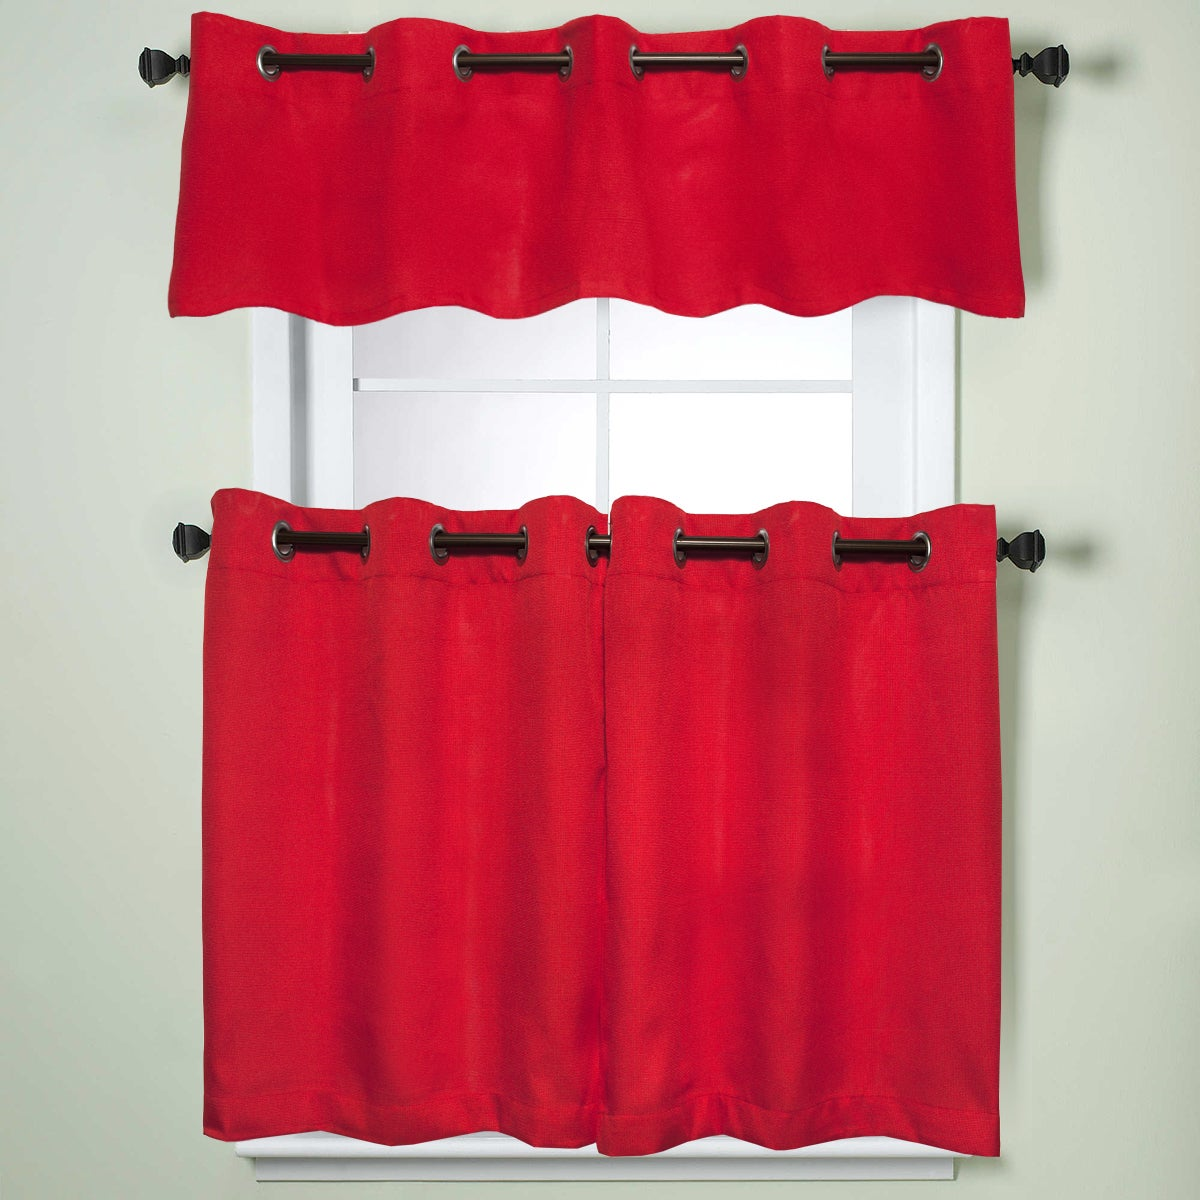 Modern Sublte Textured Solid Red Kitchen Curtains With Gr...